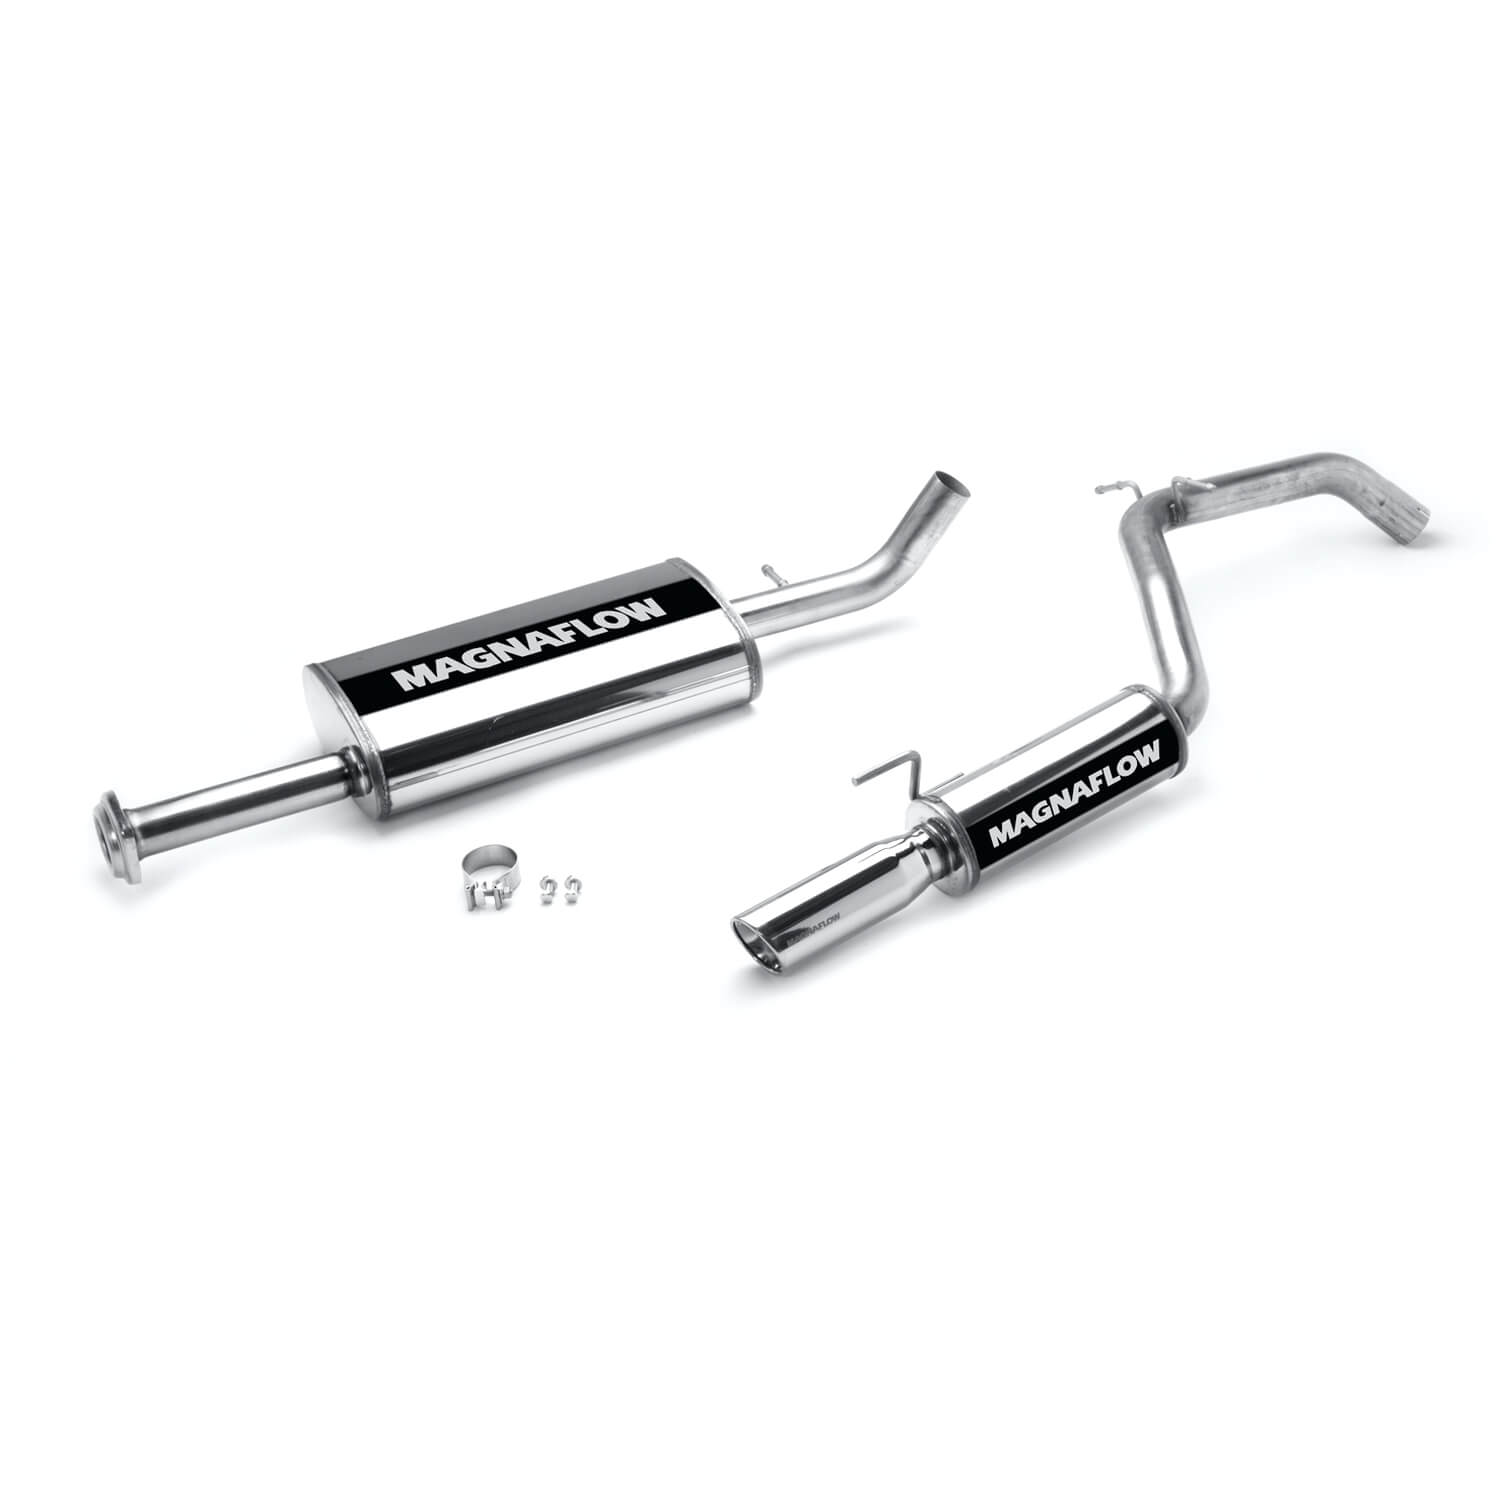 Magnaflow 16665: MF Series Cat-Back Exhaust System 2006